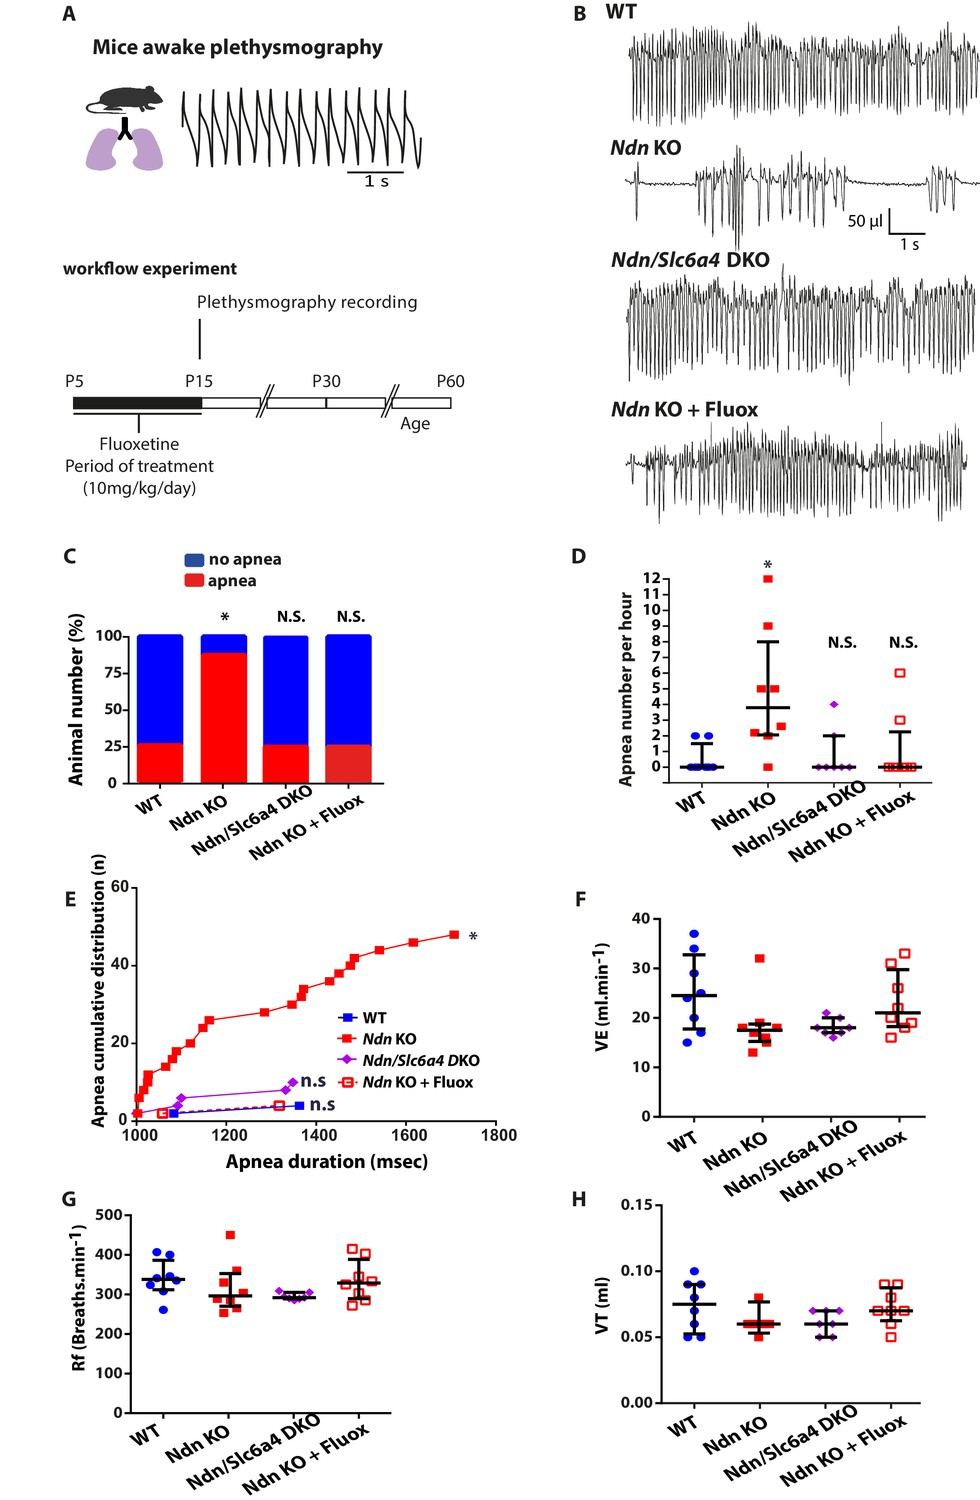 Necdin Shapes Serotonergic Development And Sert Activity Modulating 94 Vmax 1200 Wiring Diagram Genetic Ablation Or Pharmacologic Inhibition Of Suppresses Apnea Rescues Central Chemoreflex In Ndn Ko Mice